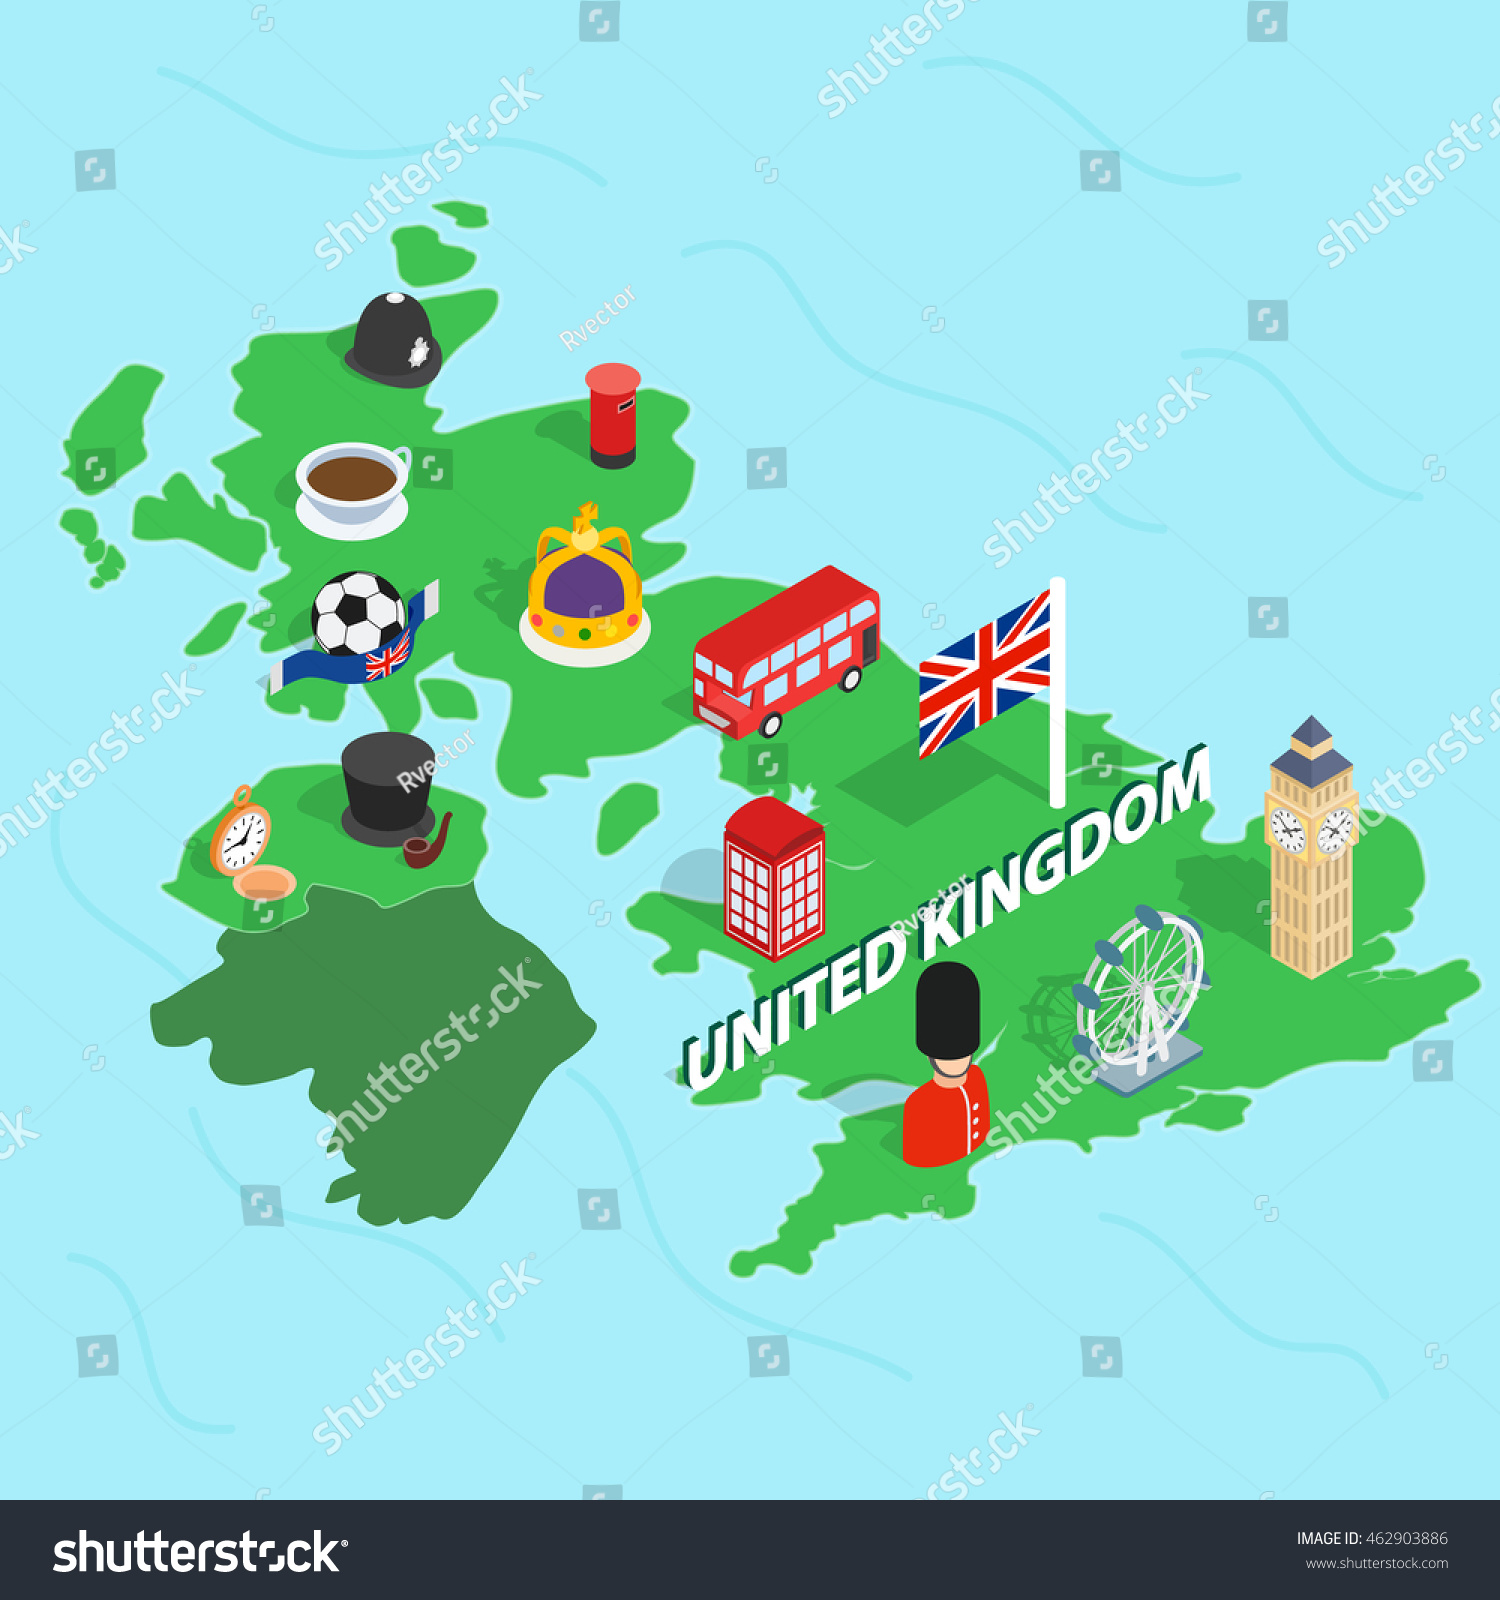 United kingdom map isometric 3d style stock vector 462903886 united kingdom map in isometric 3d style symbols of the uk set collection vector illustration biocorpaavc